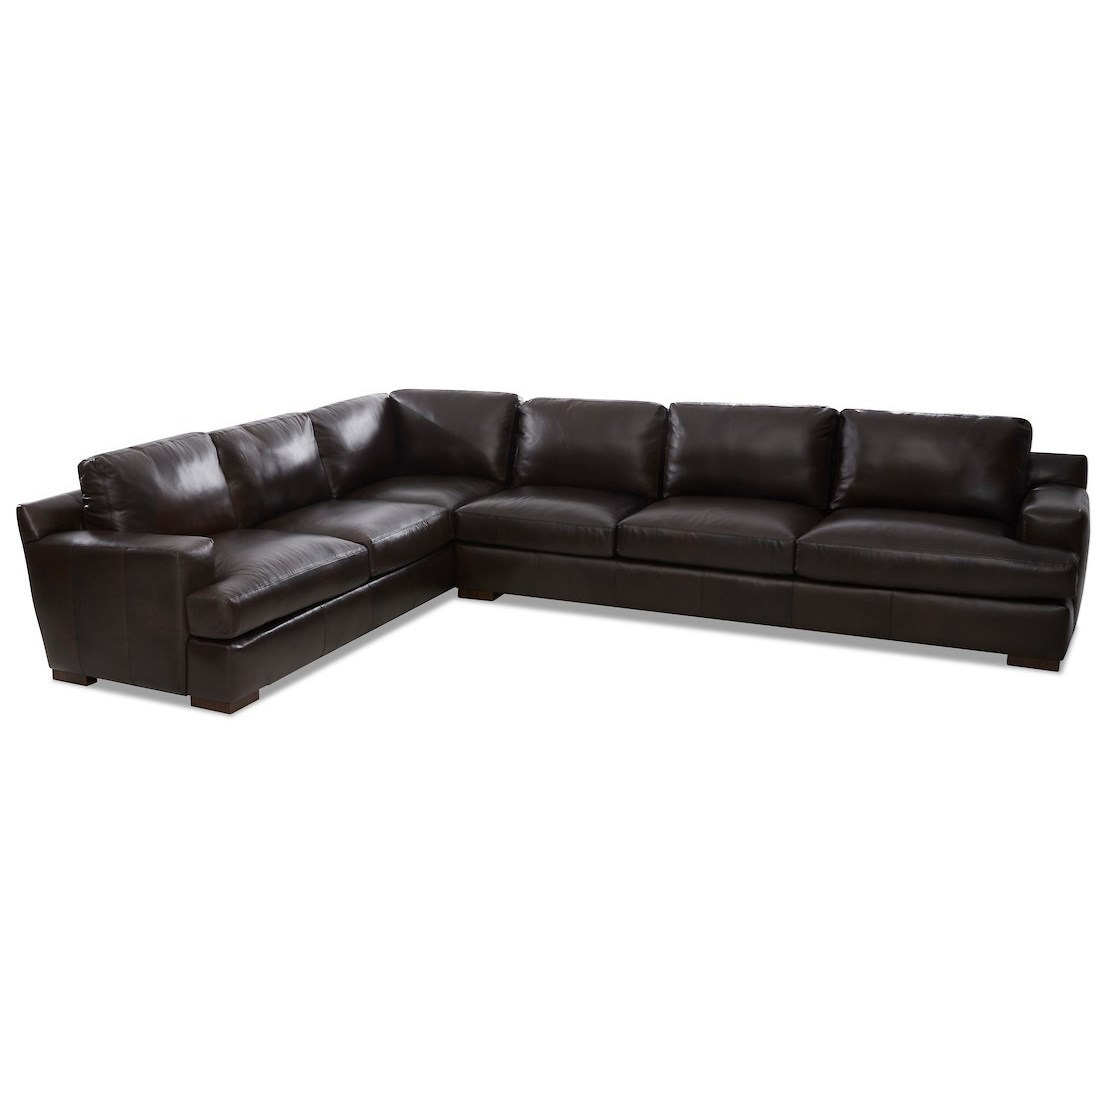 5 seat leather sectional sofa